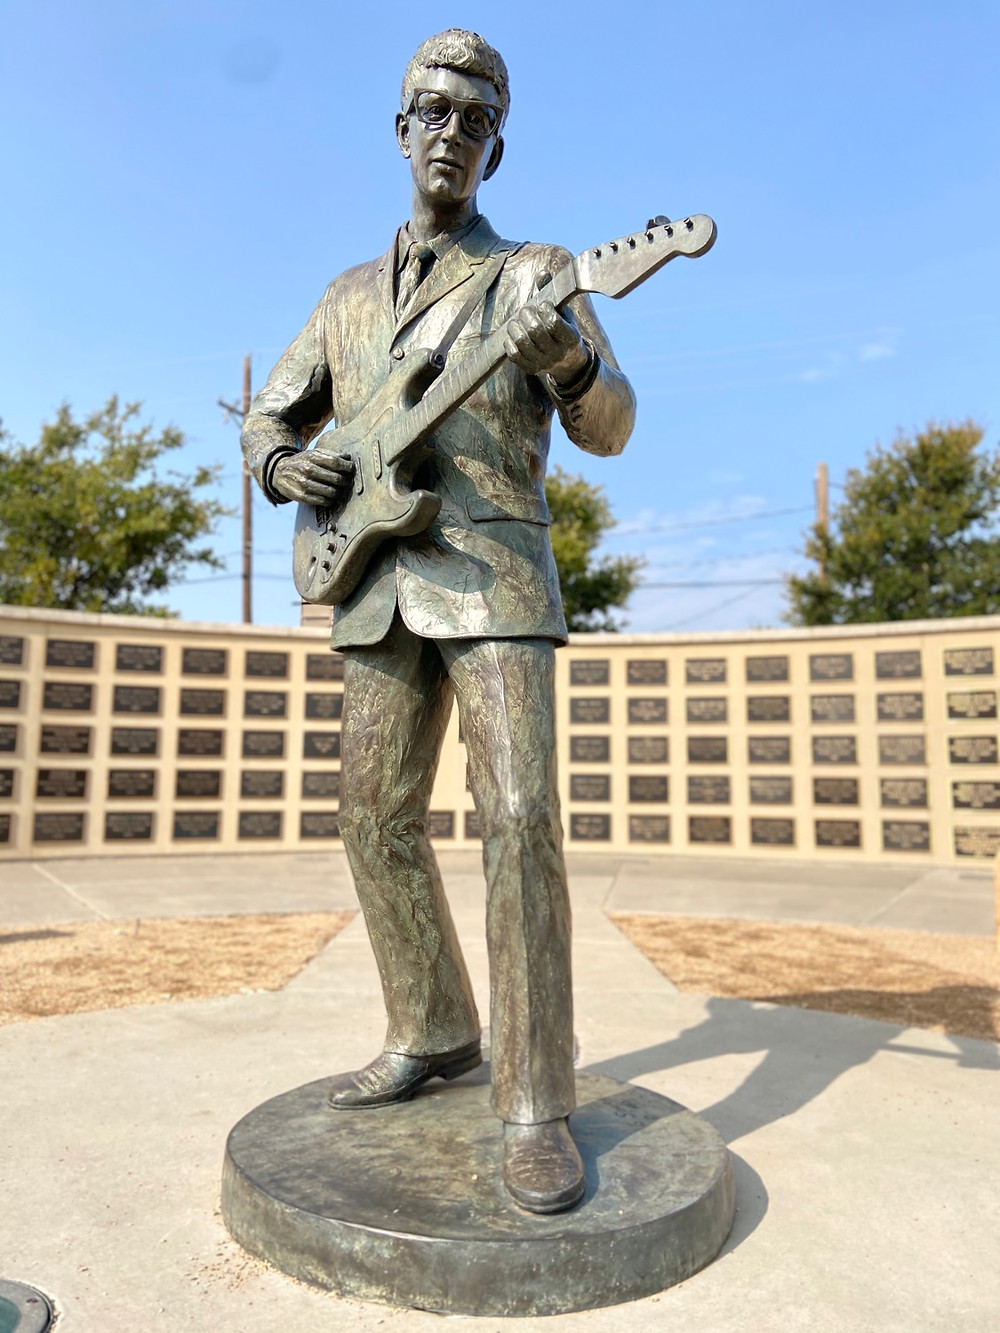 Buddy Holly statue in Lubbock TX